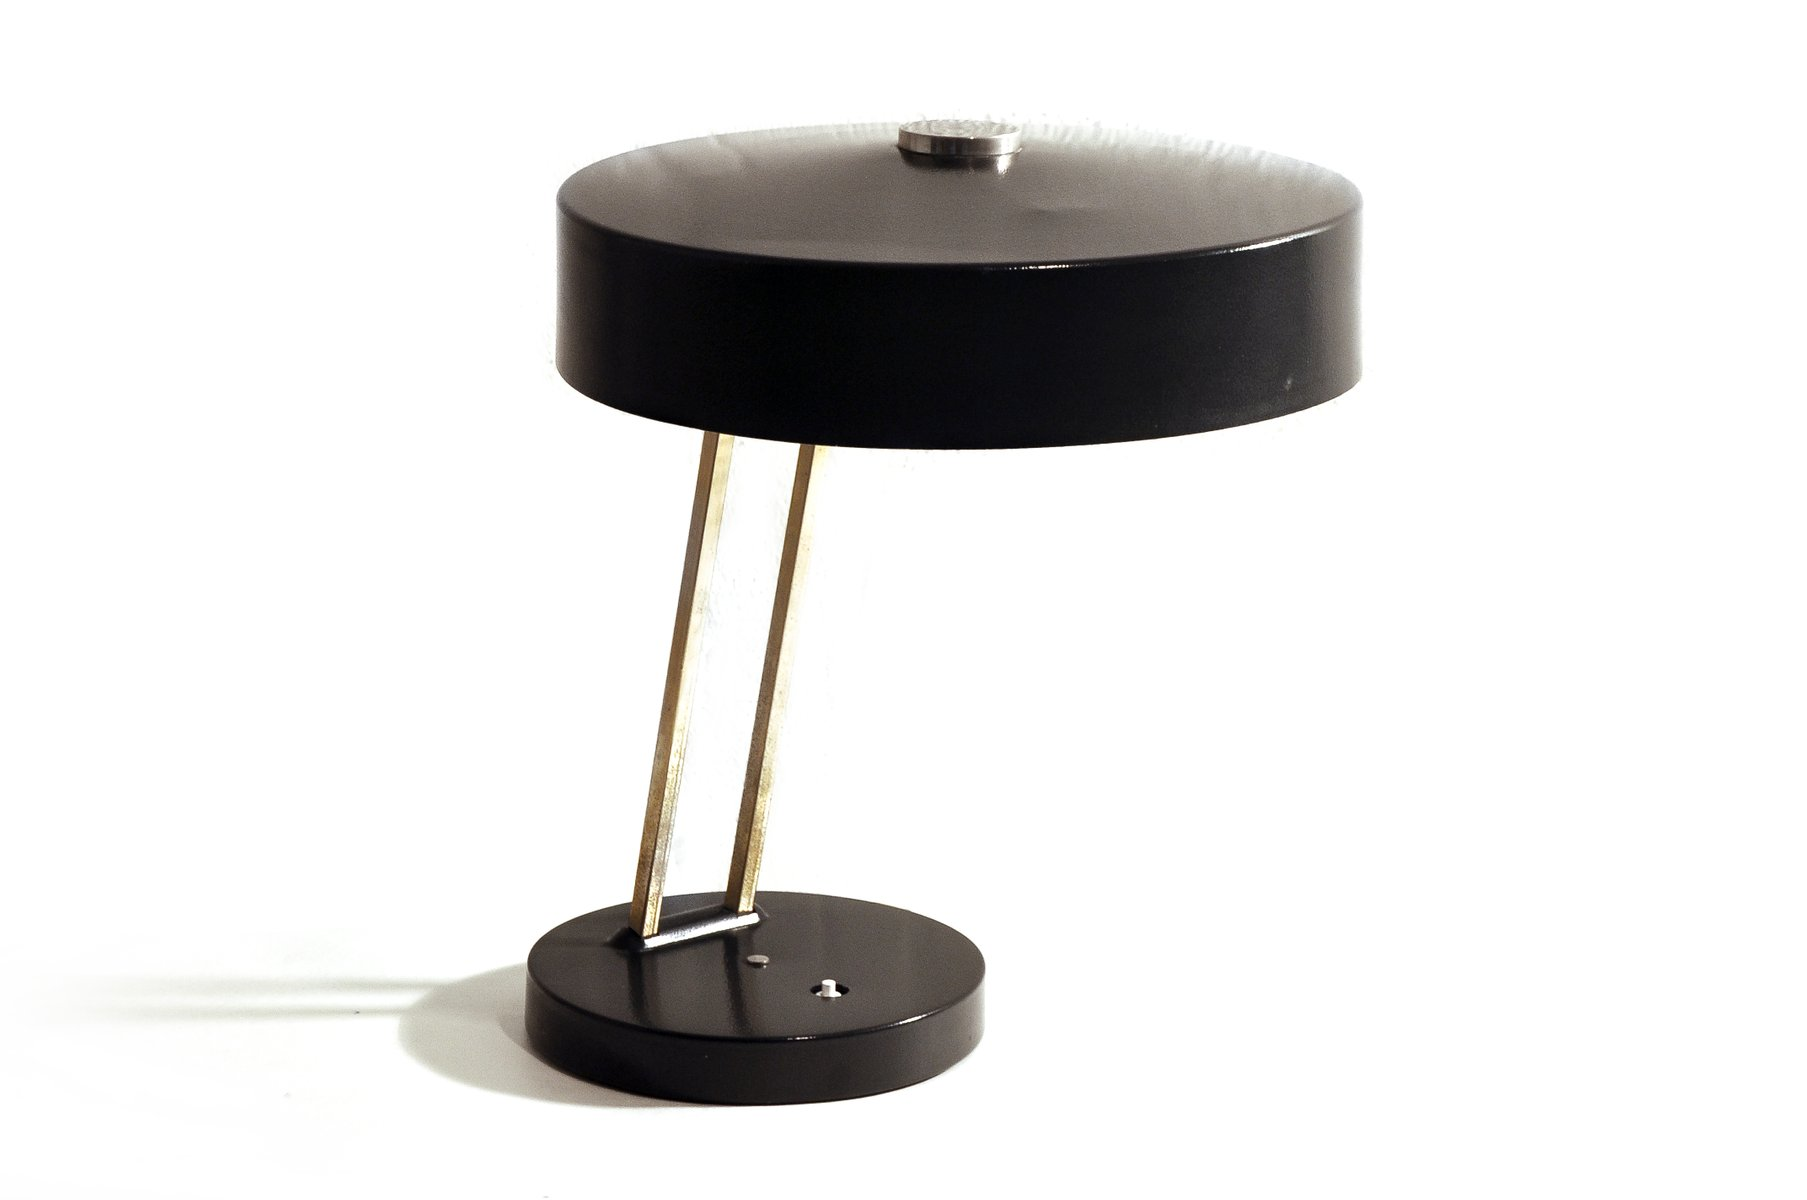 Table Lamp From Kaiser Idell 1970s For Sale At Pamono